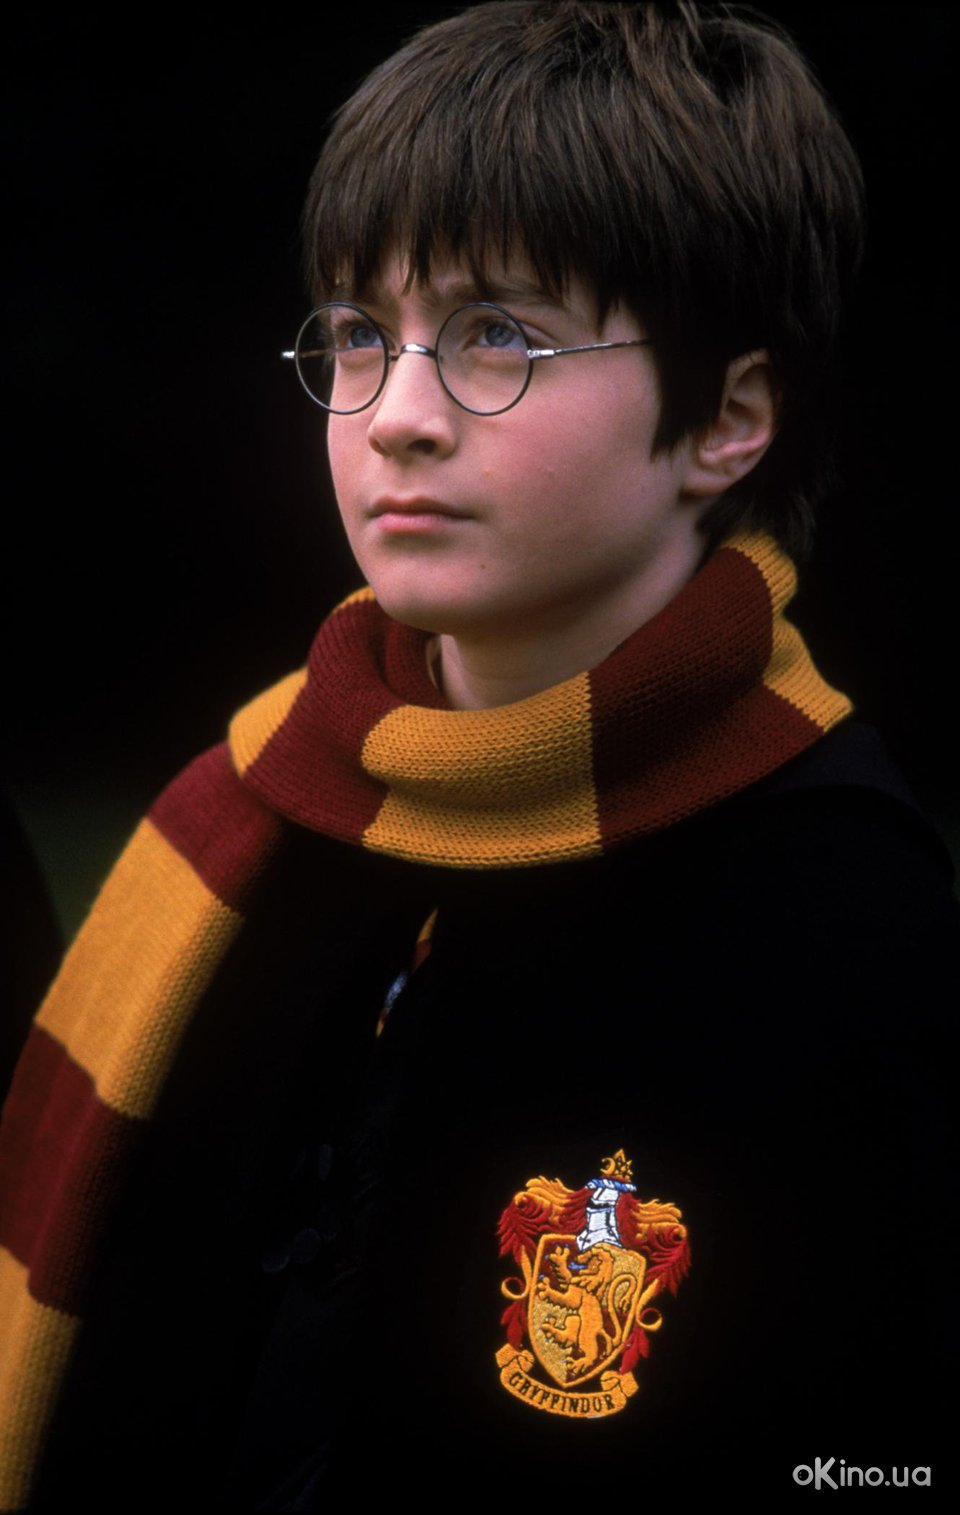 okino.ua-harry-potter-and-the-philosophers-stone-112469-a